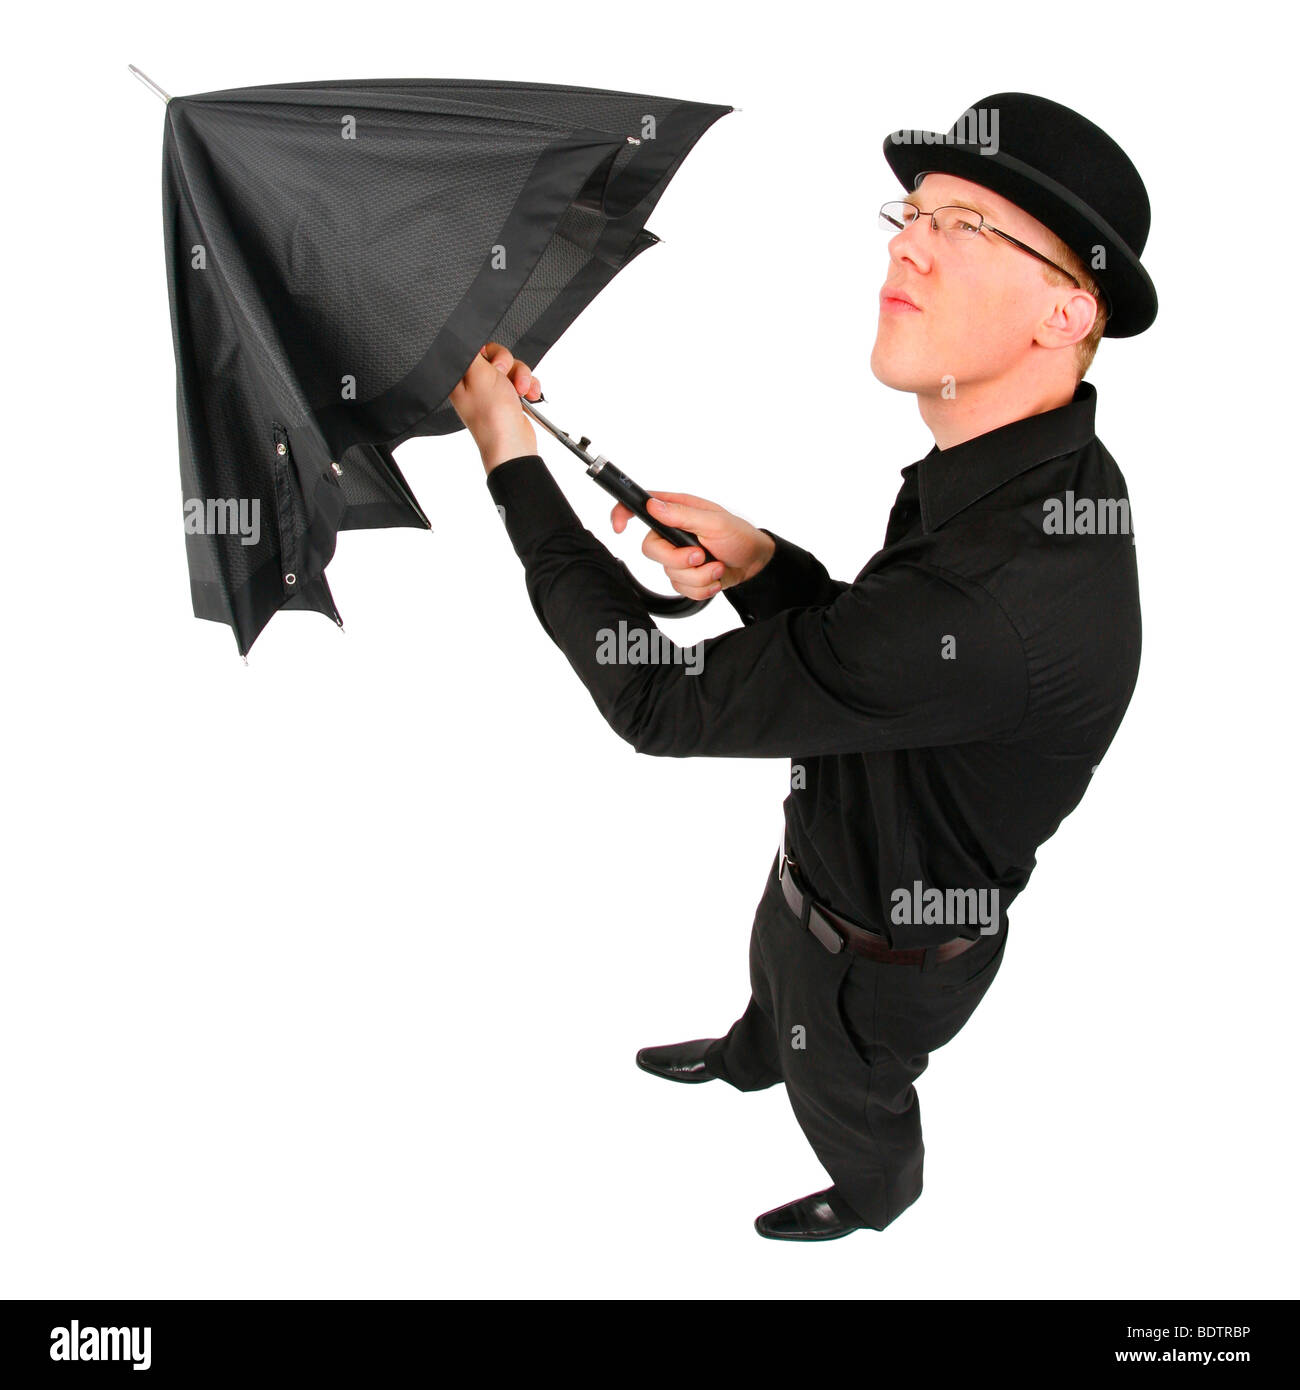 12d1f0e99dc young man with bowler hat and umbrella Stock Photo  25746106 - Alamy